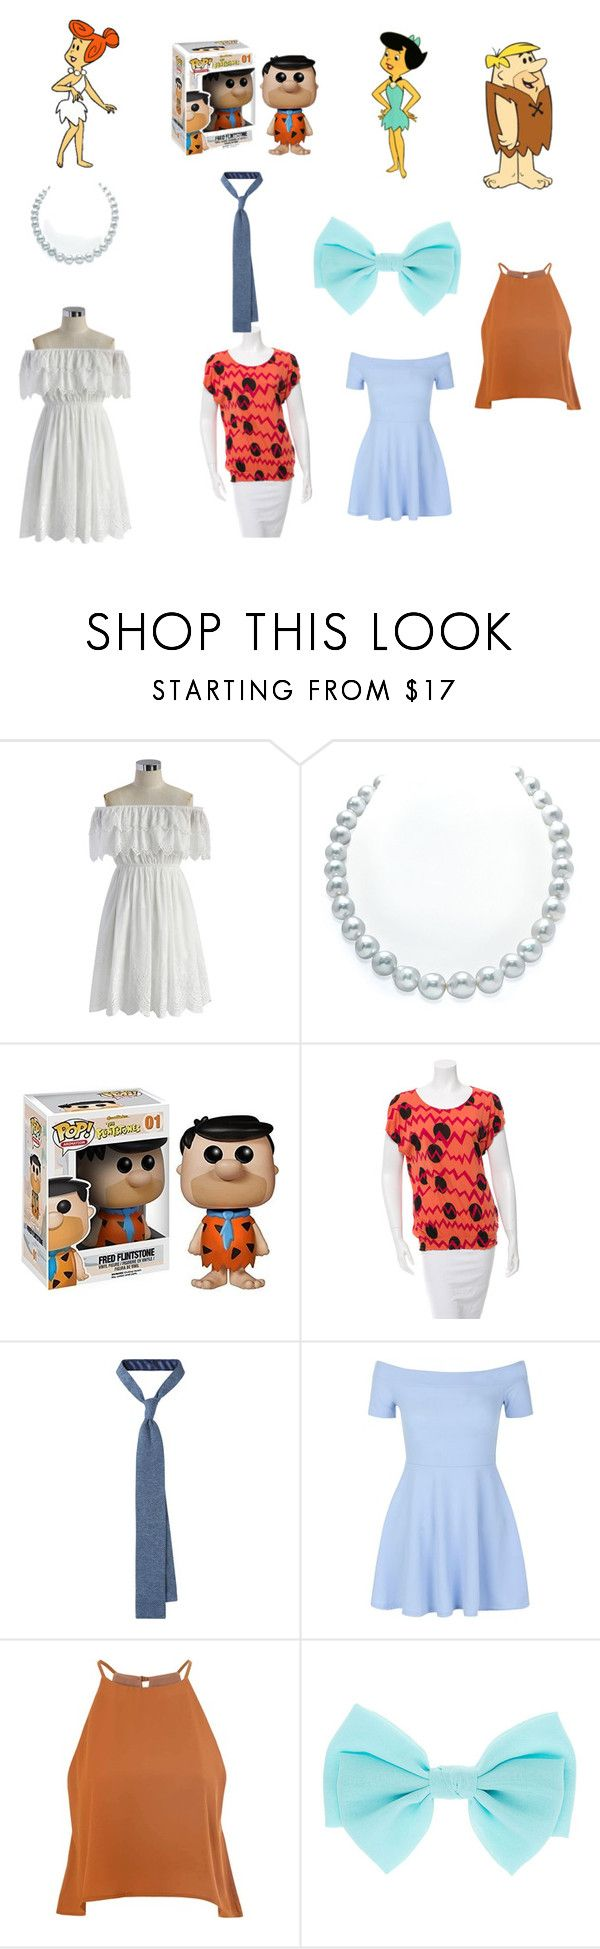 """the Flinstons and the Rubbles"" by kchest ❤ liked on Polyvore featuring beauty, Chicwish, Funko, Sonia by Sonia Rykiel, New Look and Glamorous"